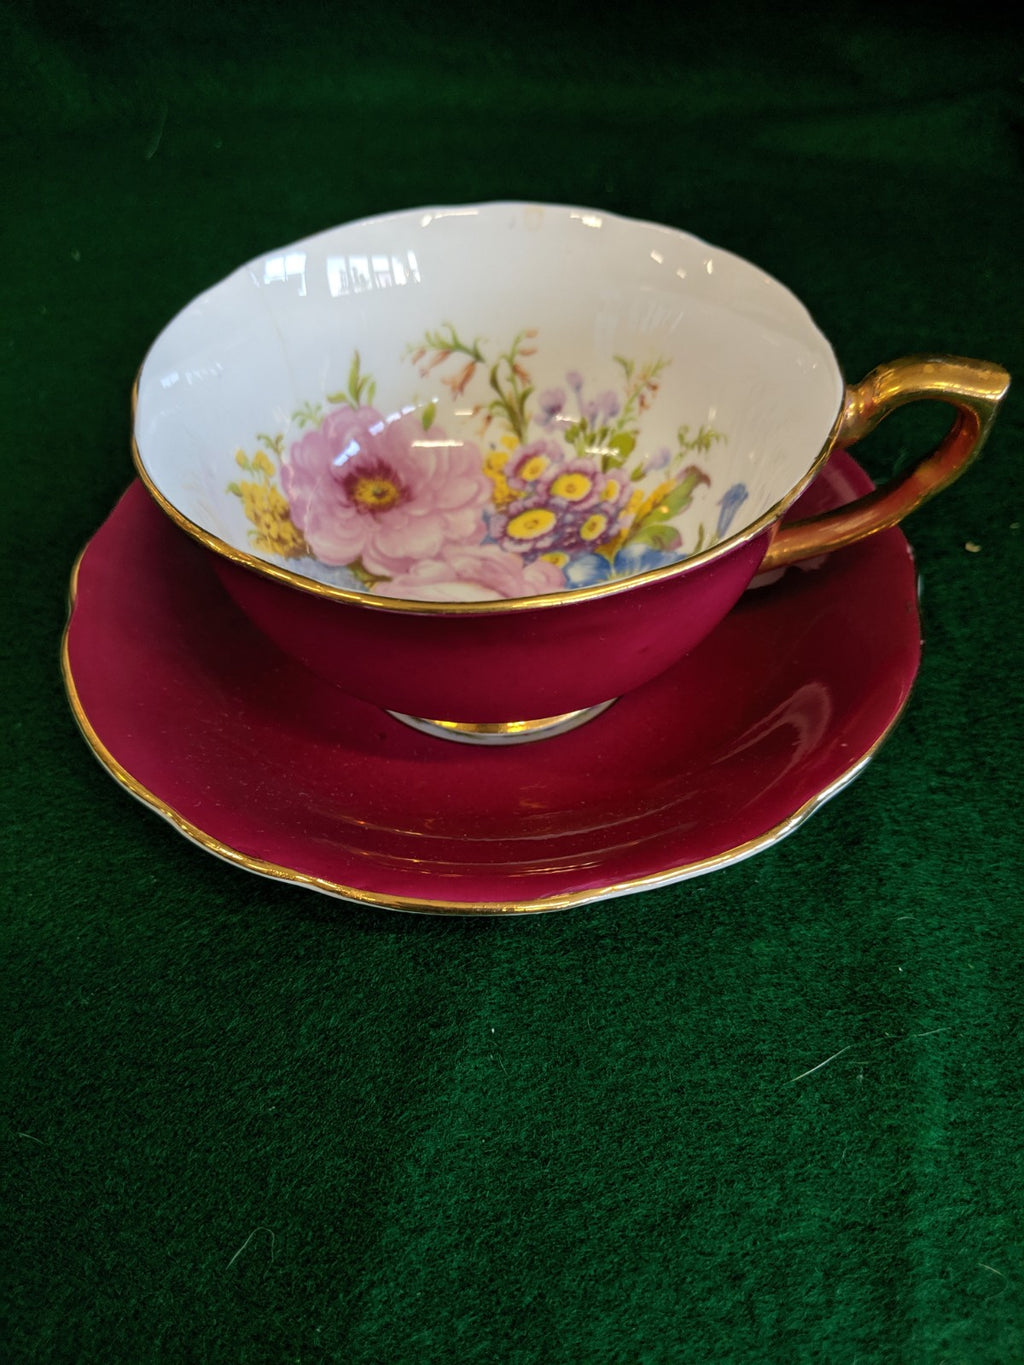 Vintage Windsor teacup and saucer, rare pattern 385/66 in red